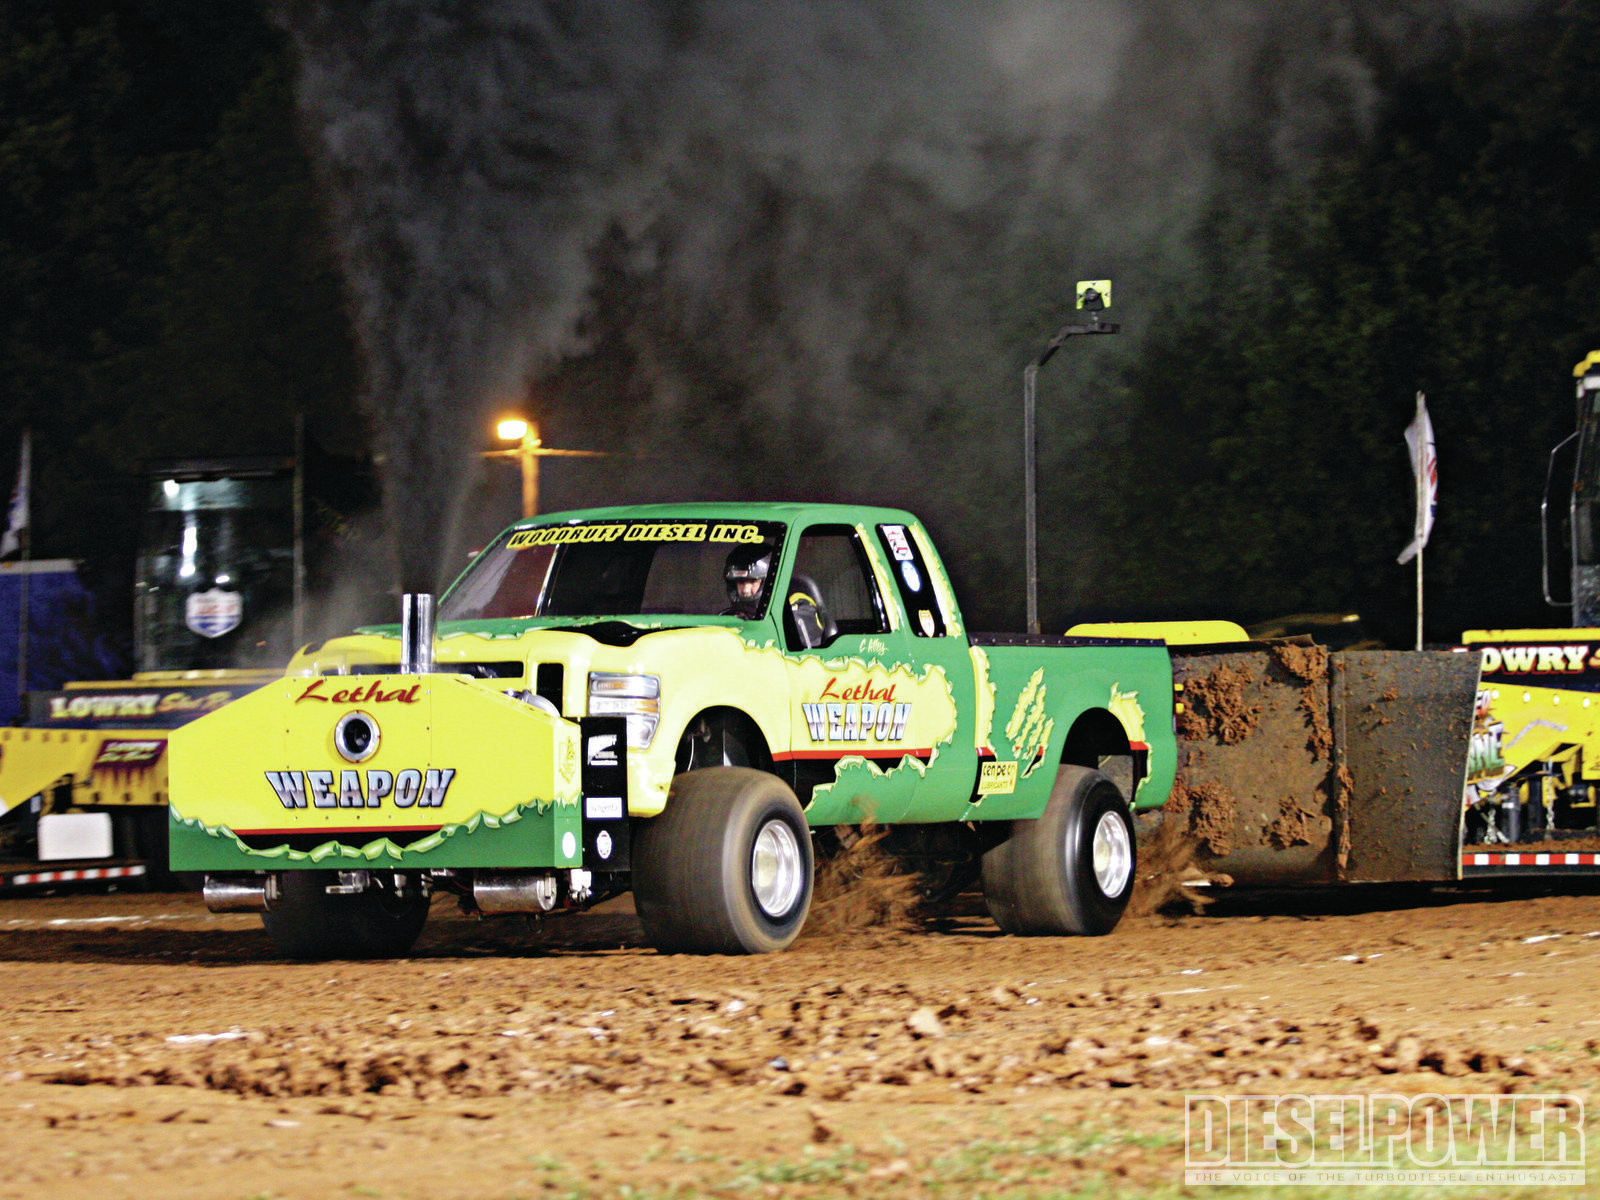 ... -PULLING race racing hot rod rods tractor ford pickup 4x4 f wallpaper